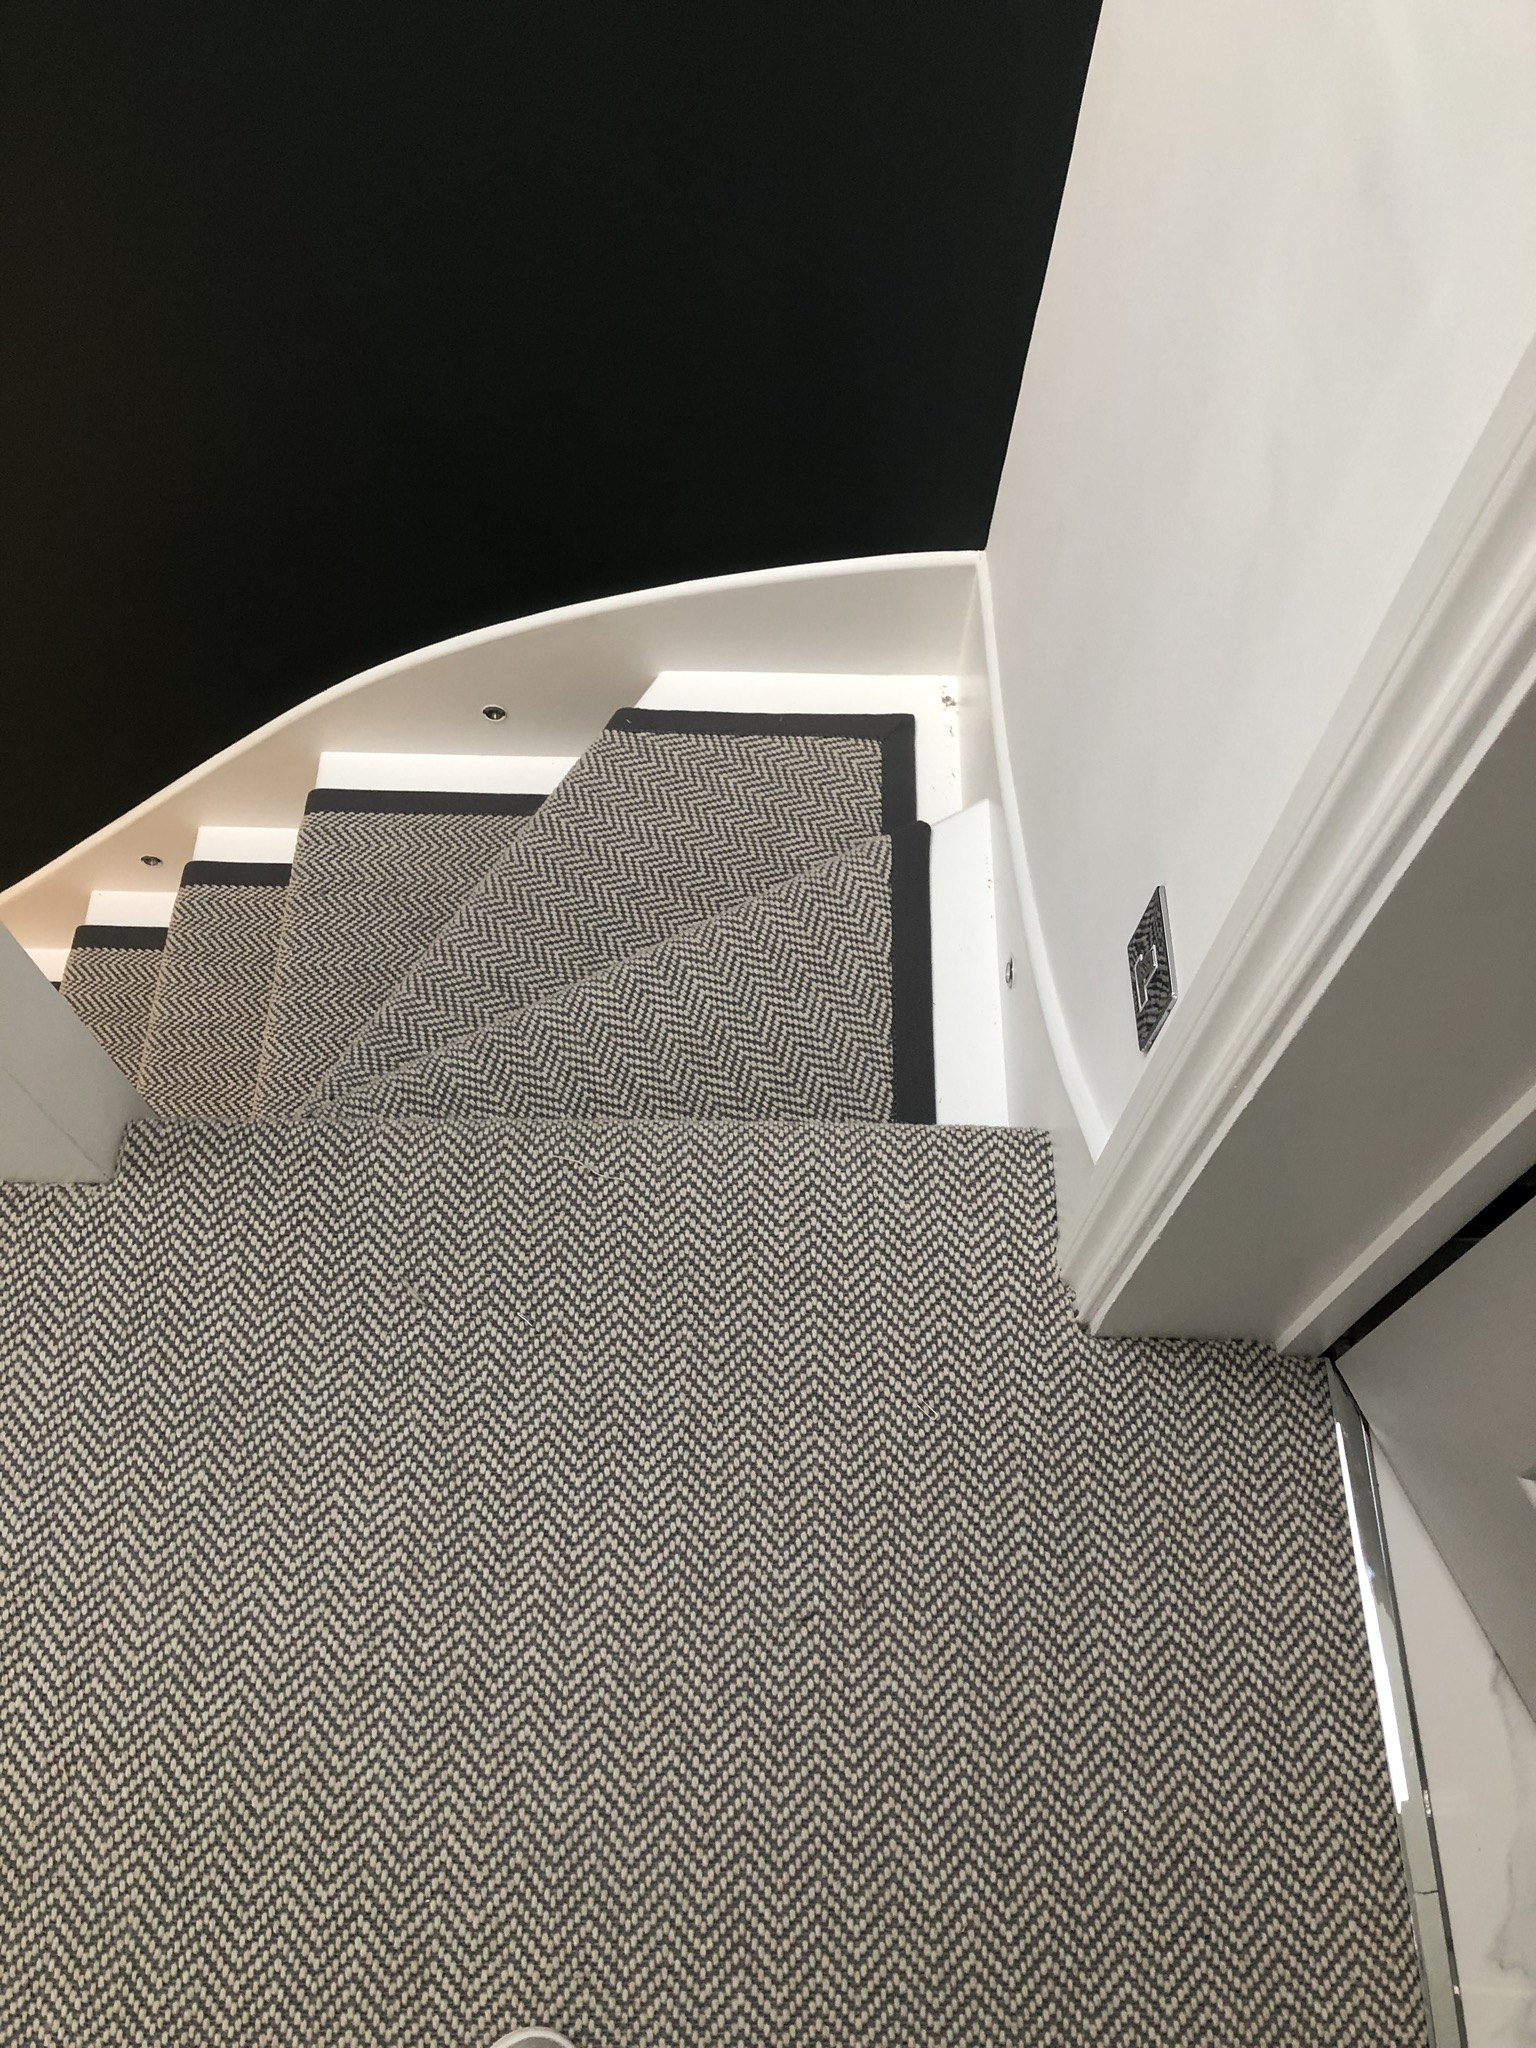 Fibre Flatweave Classic Herringbone Dapple carpet installed Battersea 5